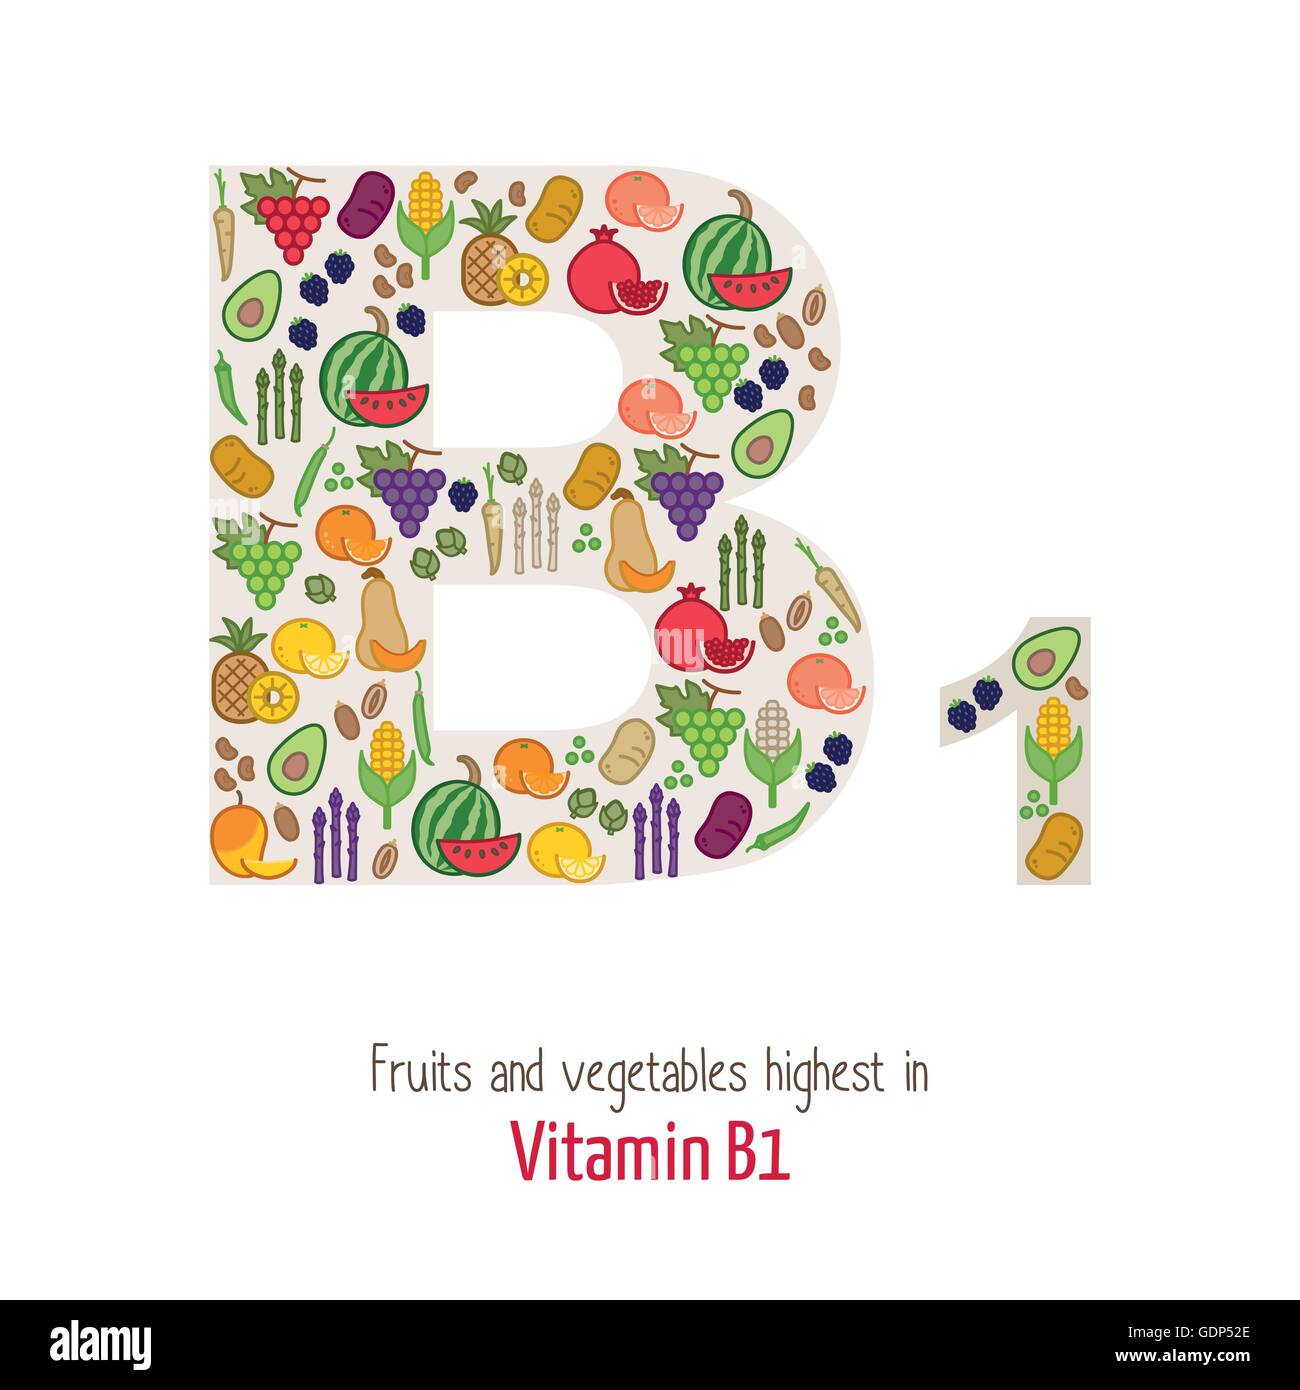 fruits and vegetables highest in vitamin b1 composing b1 letter